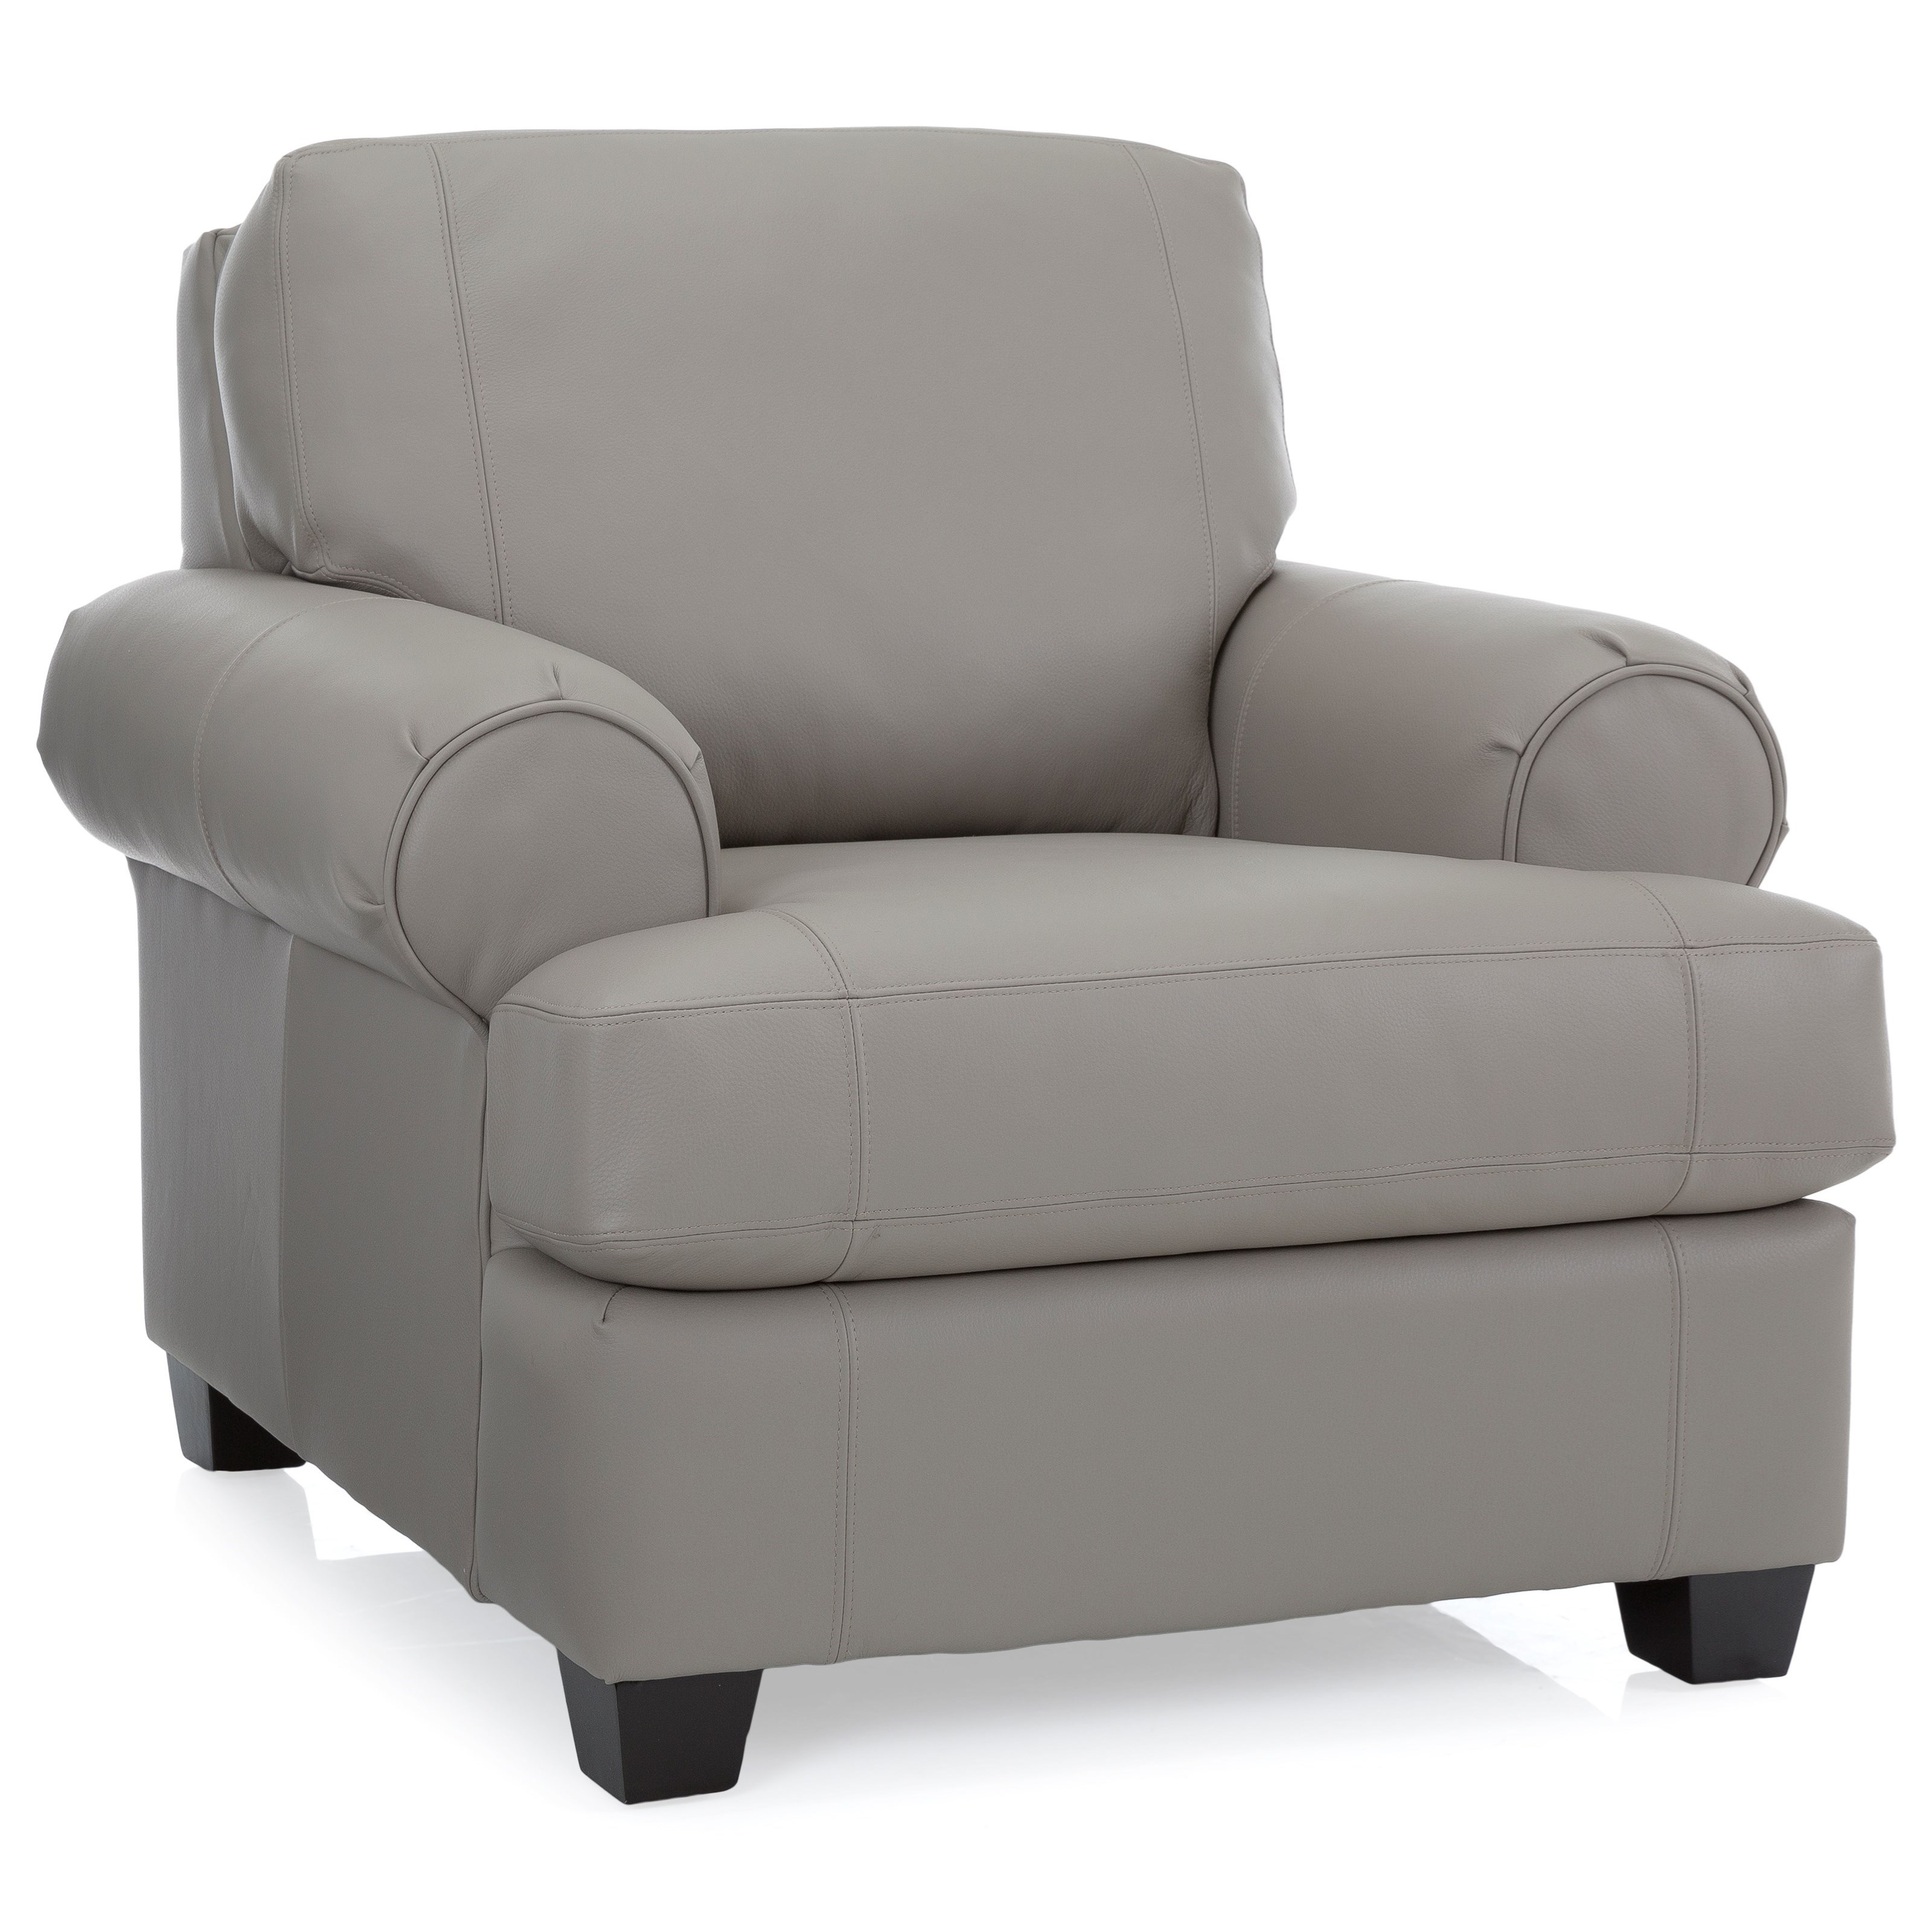 2285 Chair by Decor-Rest at Rooms for Less